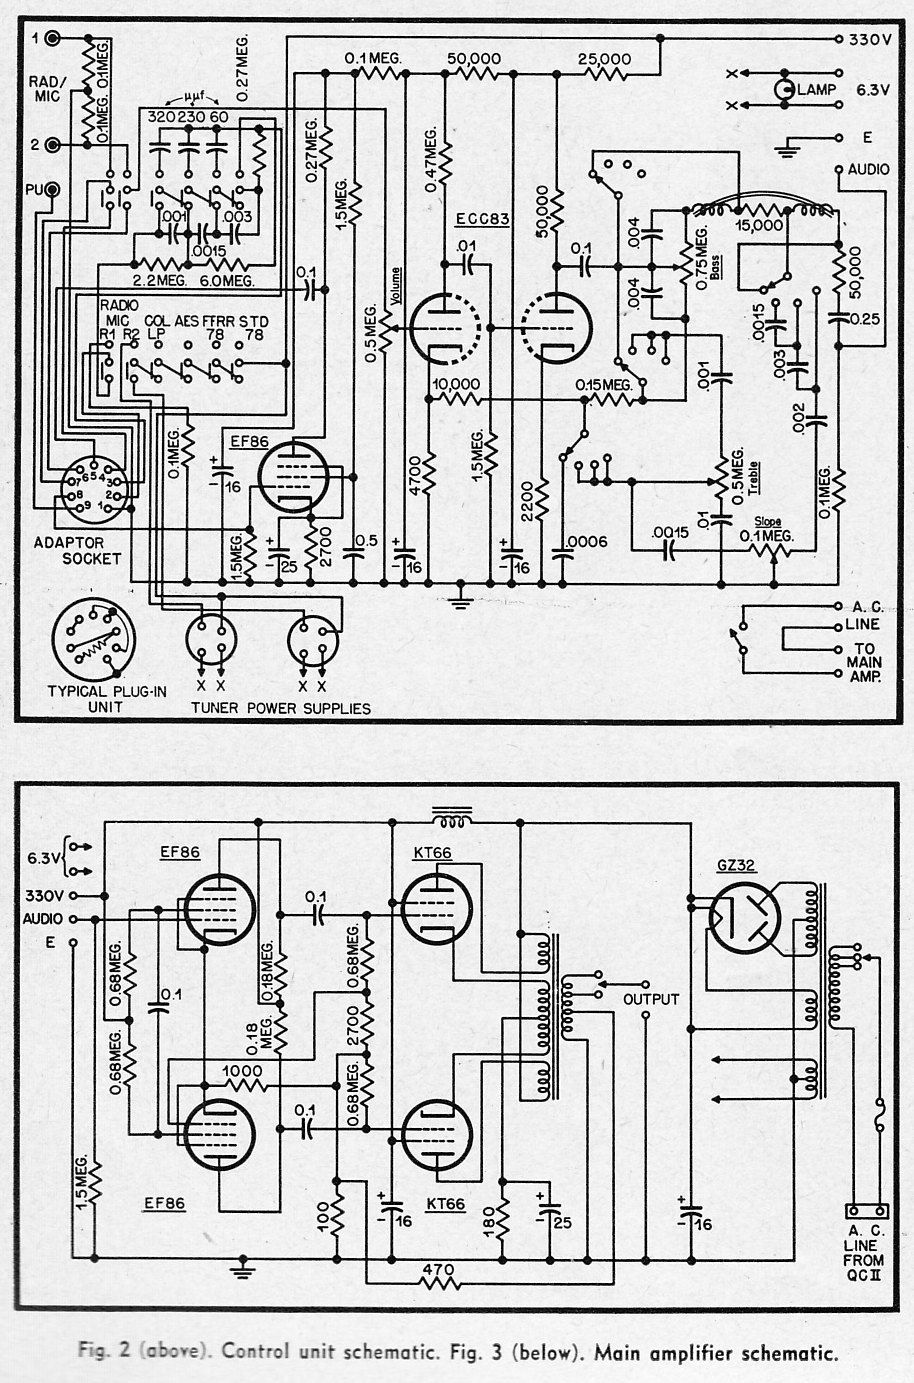 Circuit Diagram Of Hi Fi Amplifier 32w Audio With Tda2050 12v 400w Nerv The Craftsmen C500 Power Today We Have Some Hifi